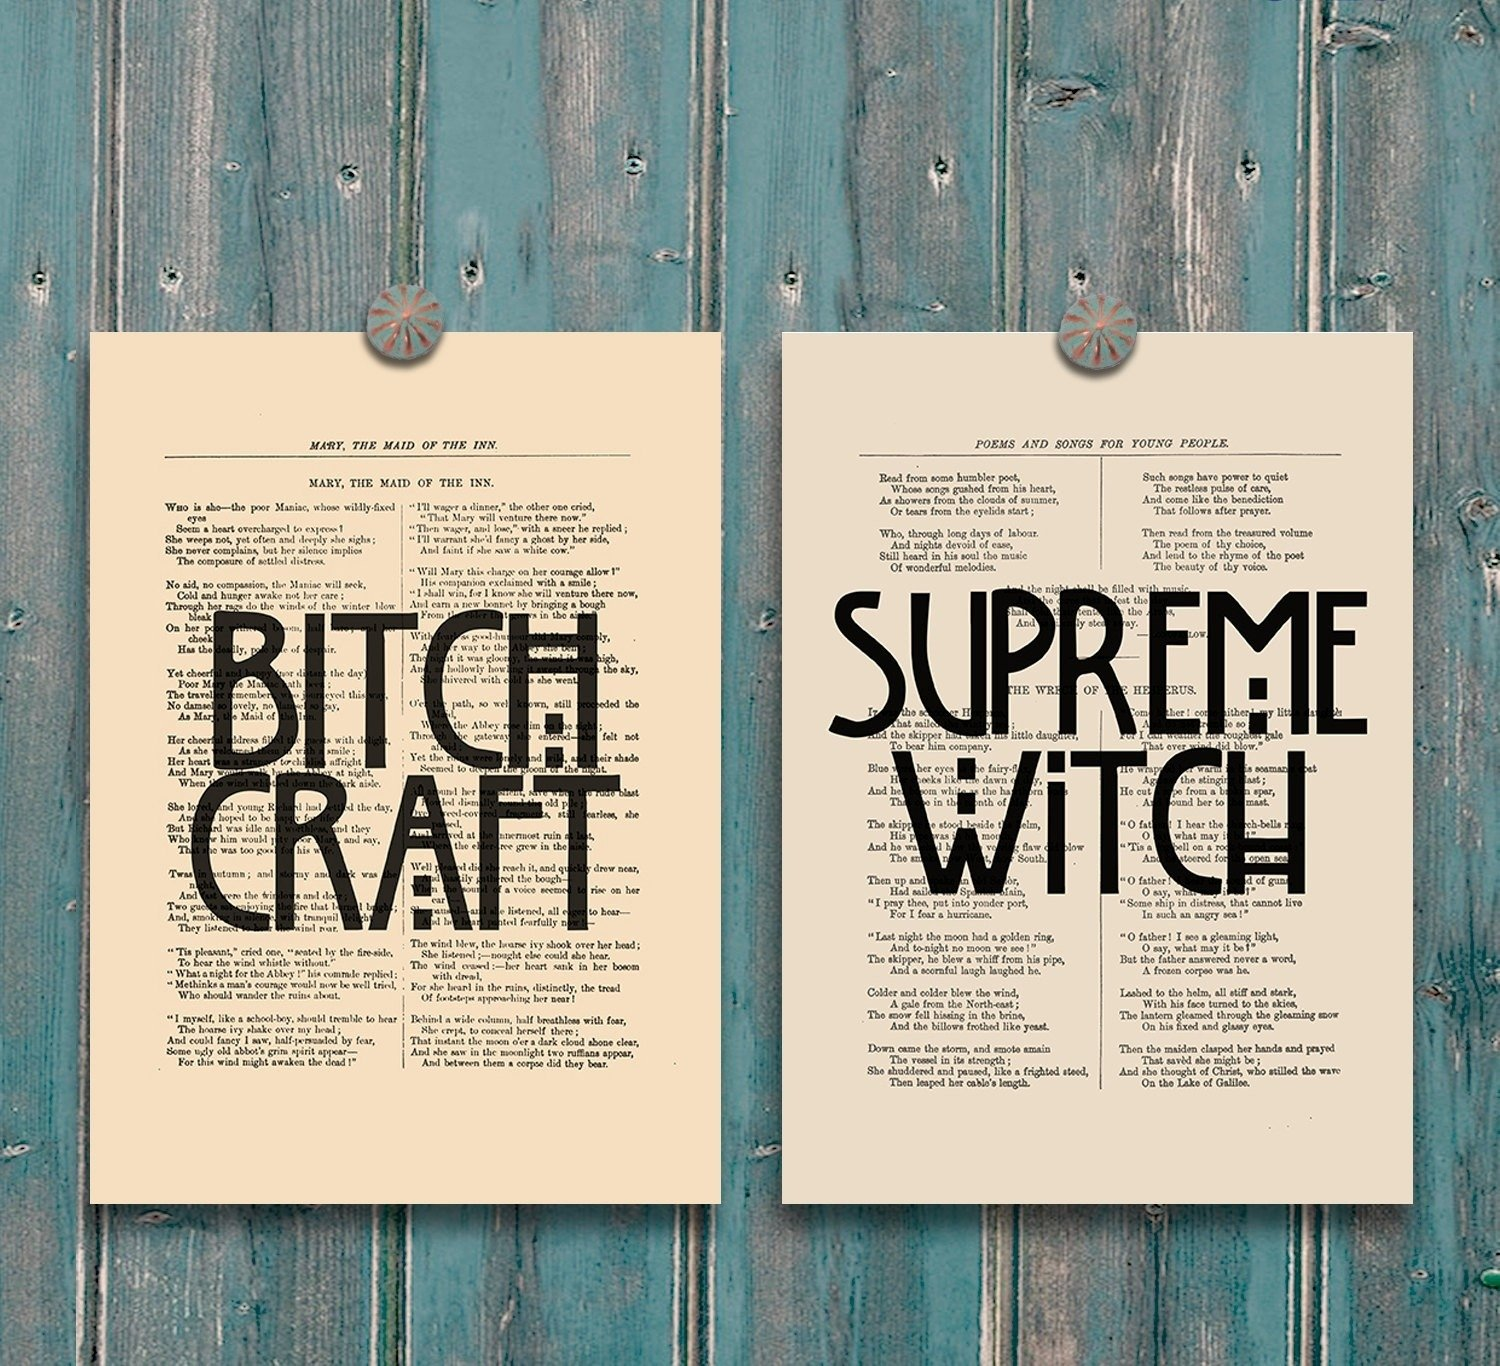 10 Spectacular Ideas For A Horror Story 2014 wall decor ideas american horror story coven print bitch 2020